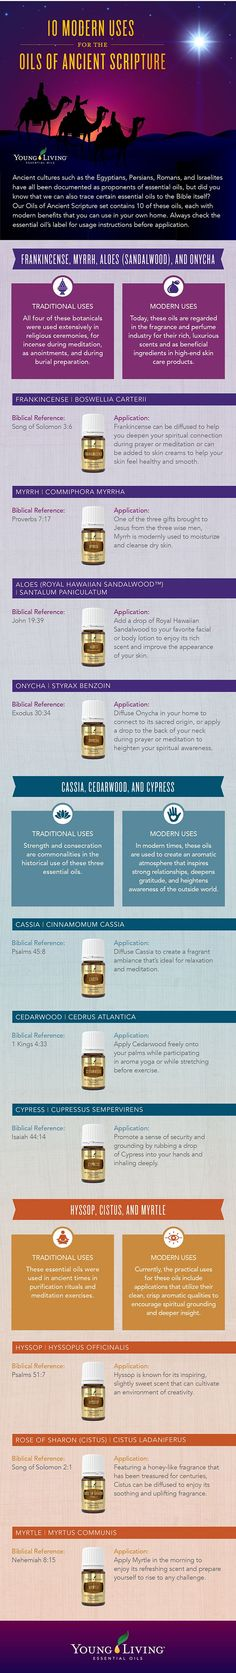 10 Essential Oils of Ancient Scripture  Biblical Oils Infographic Member Number #3309848 Young Living